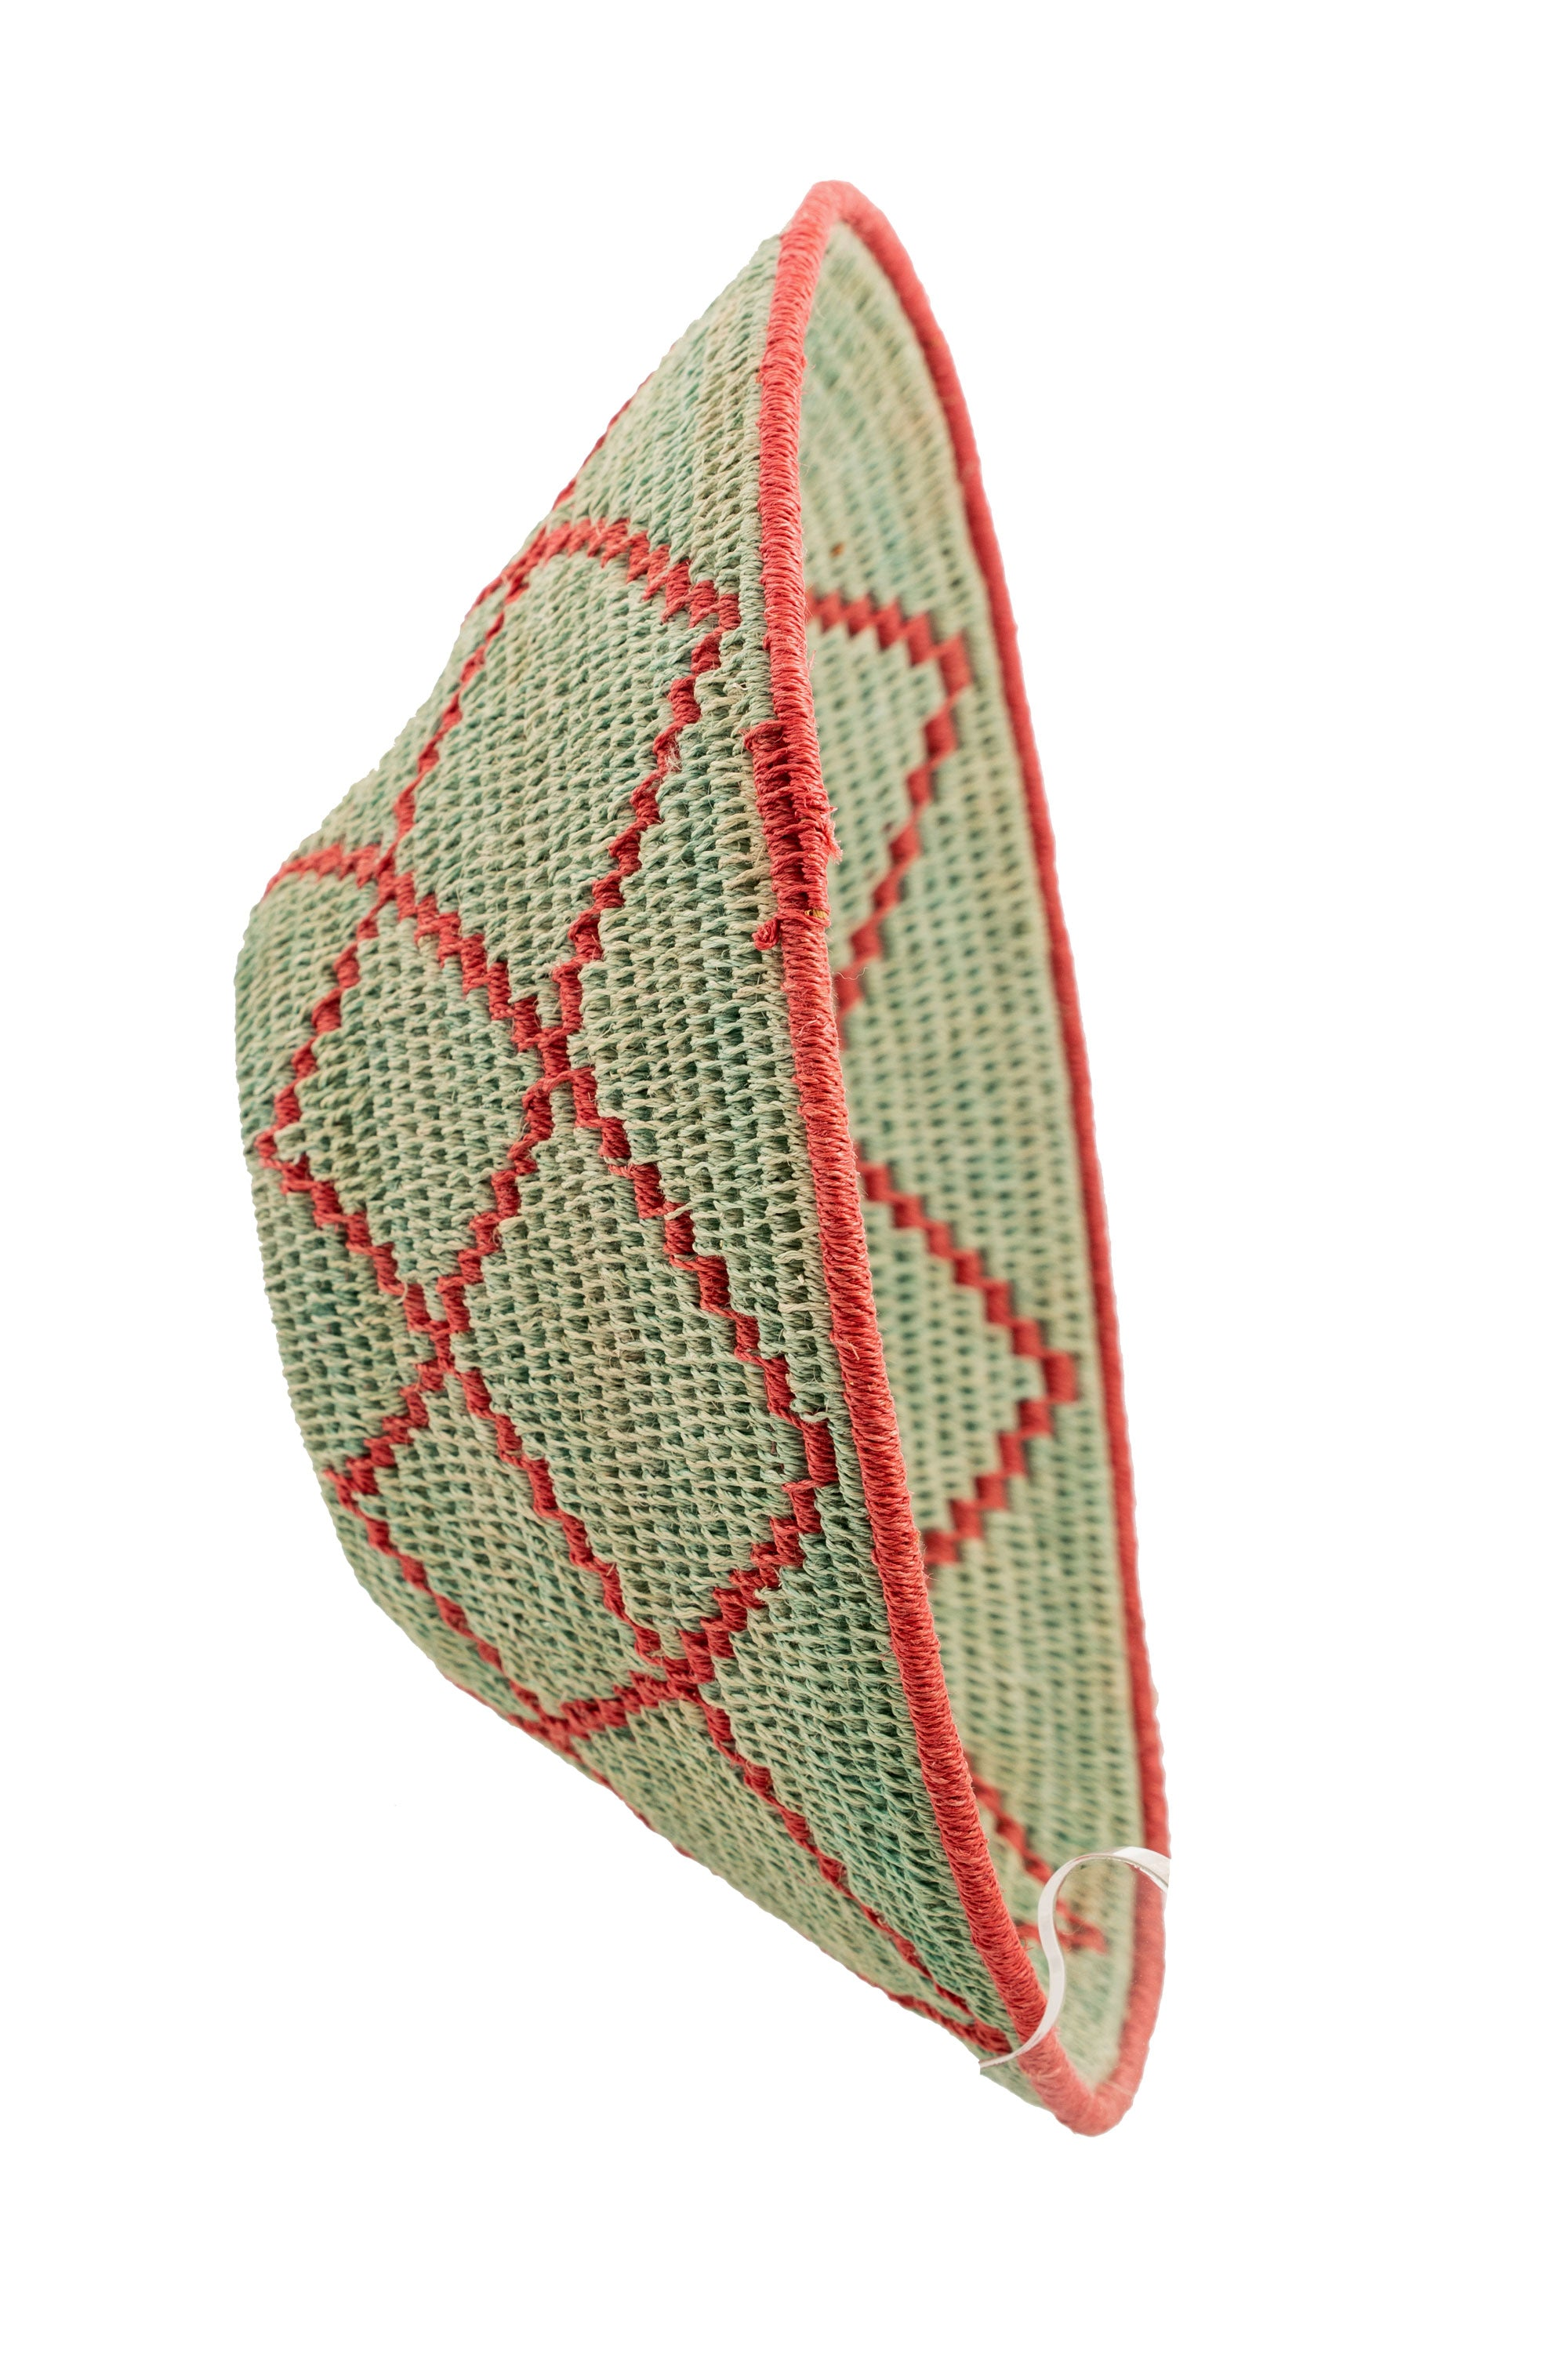 Miscellaneous, Basket, Hand Coiled, Unique Green Geometeric, Vintage, 188